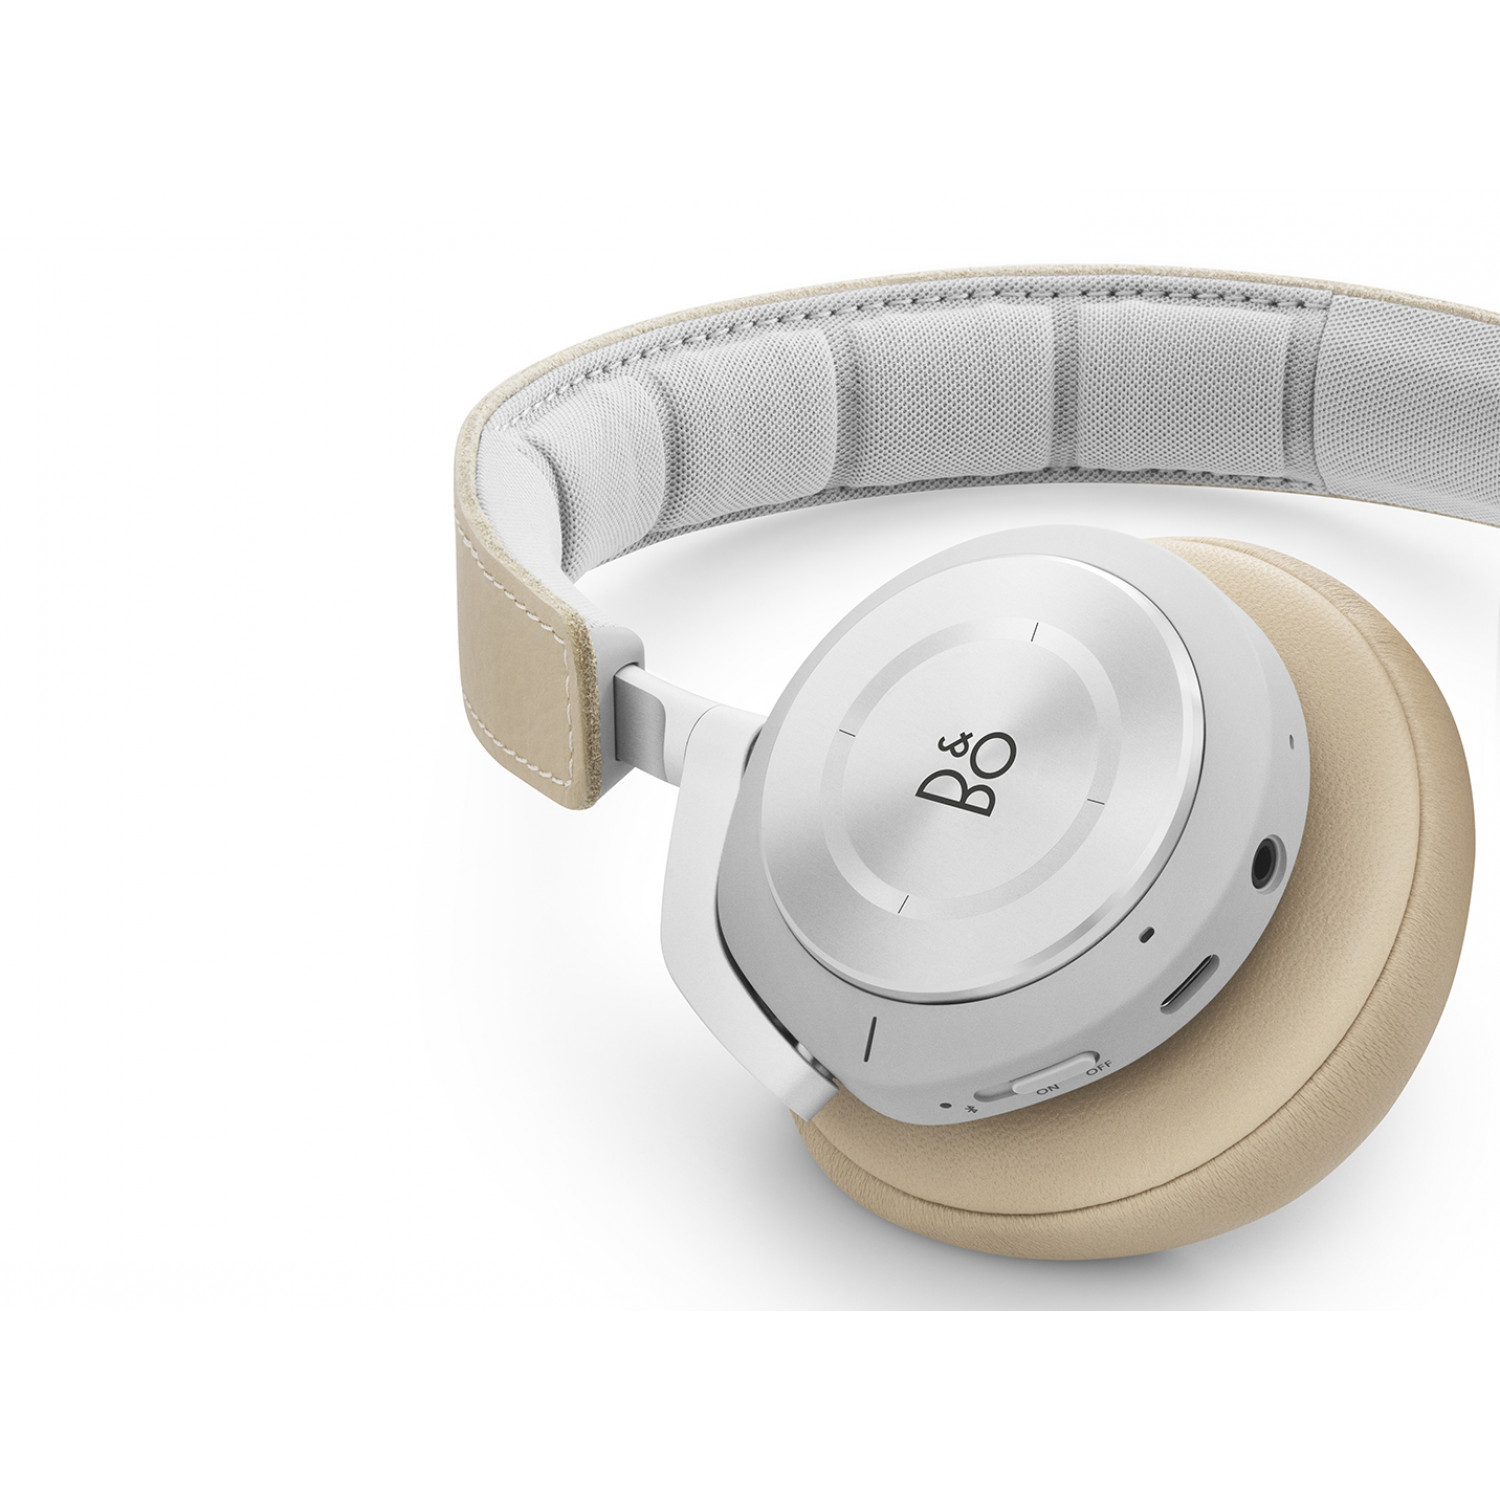 a00e513f409 Bang & Olufsen Beoplay H9i - Wireless, Noise Cancelling Headphones -  Exclusive Offer